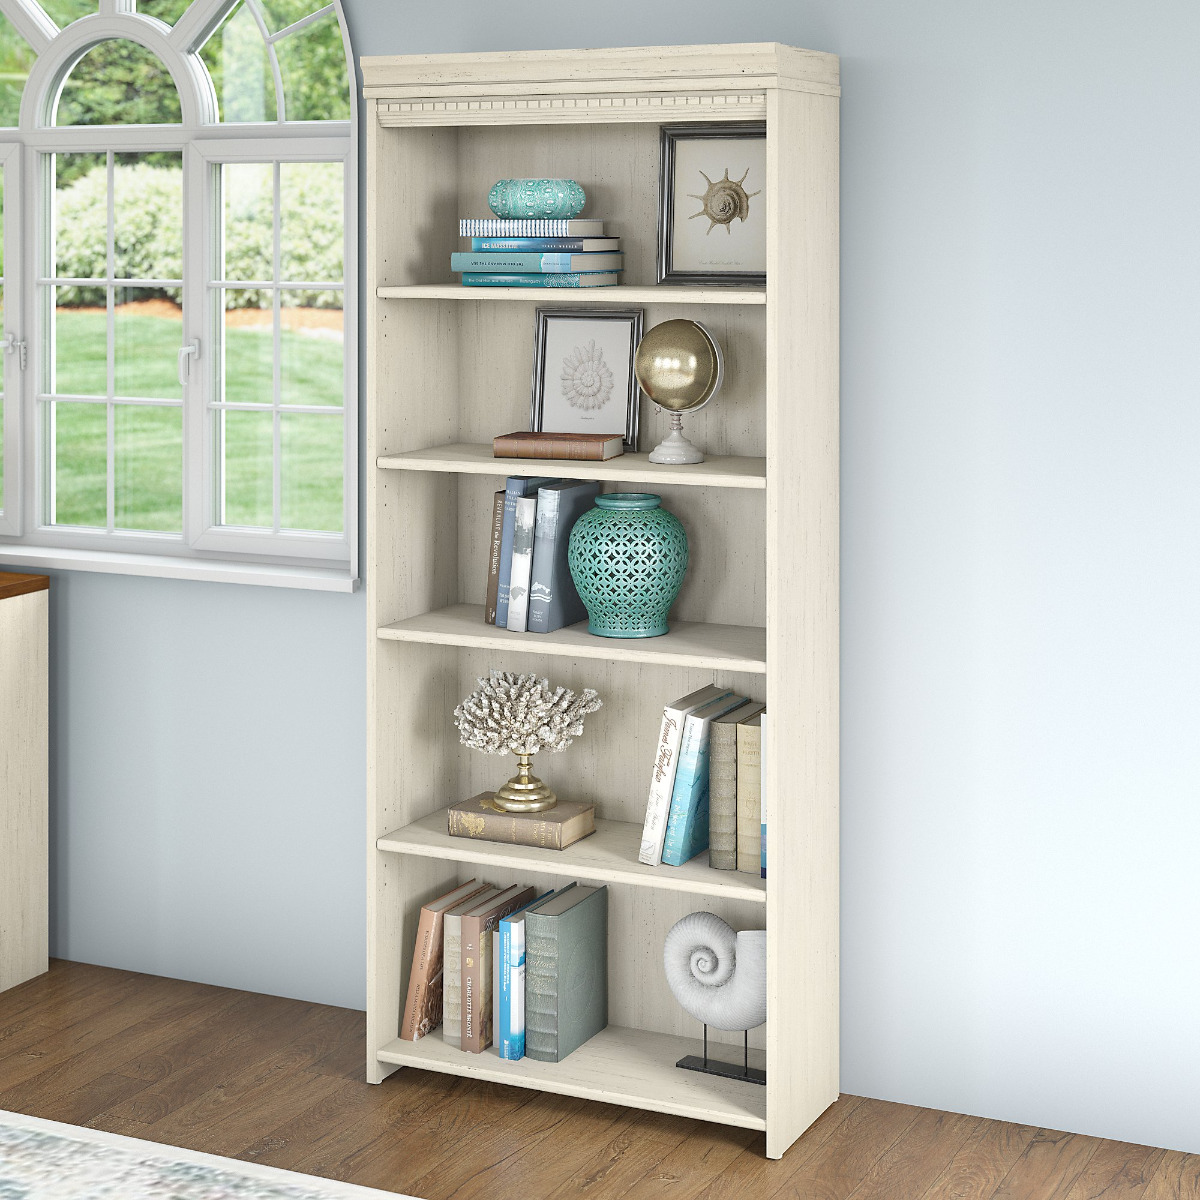 Fairview 5 shelf Bookcase in Antique White - Bush Furniture WC53265-03